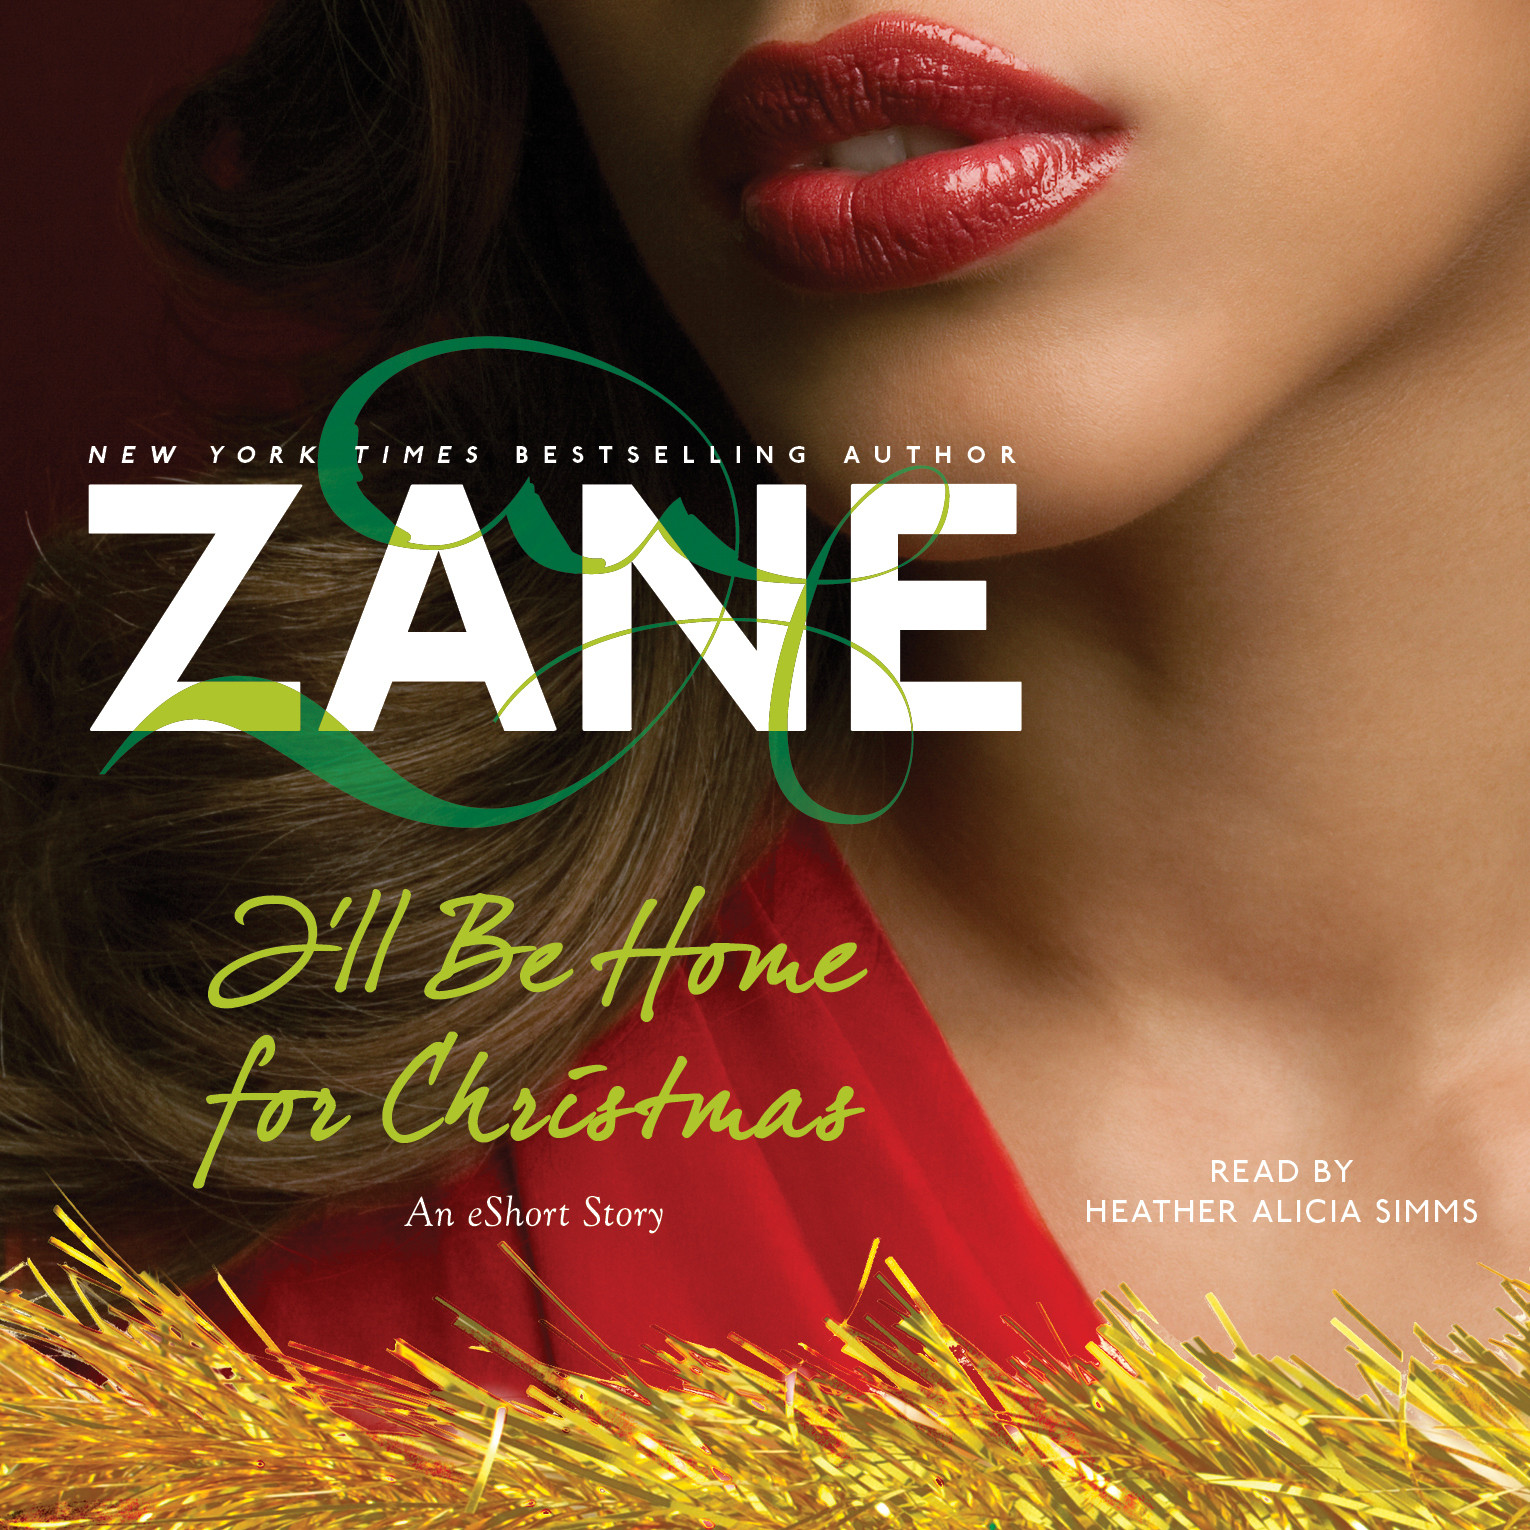 Printable Zane's I'll Be Home for Christmas: An eShort Story Audiobook Cover Art